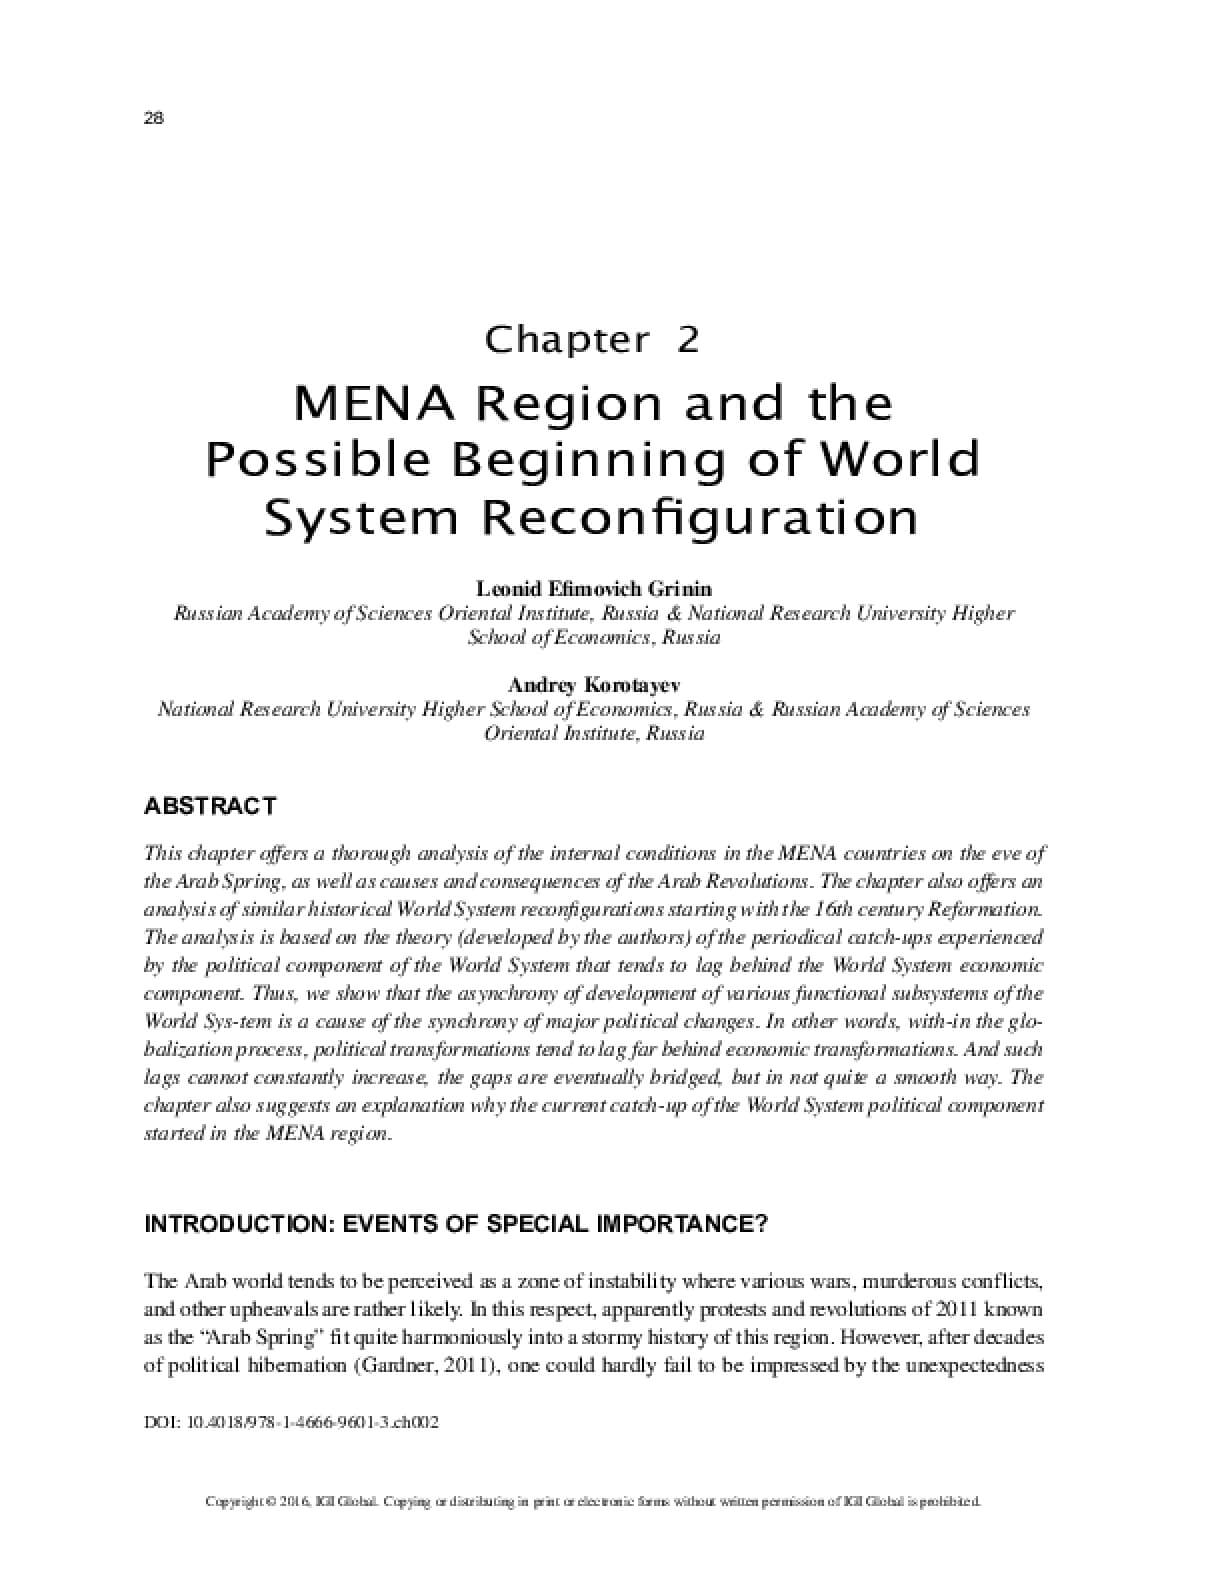 MENA Region and the Possible Beginning of World System Reconfiguration